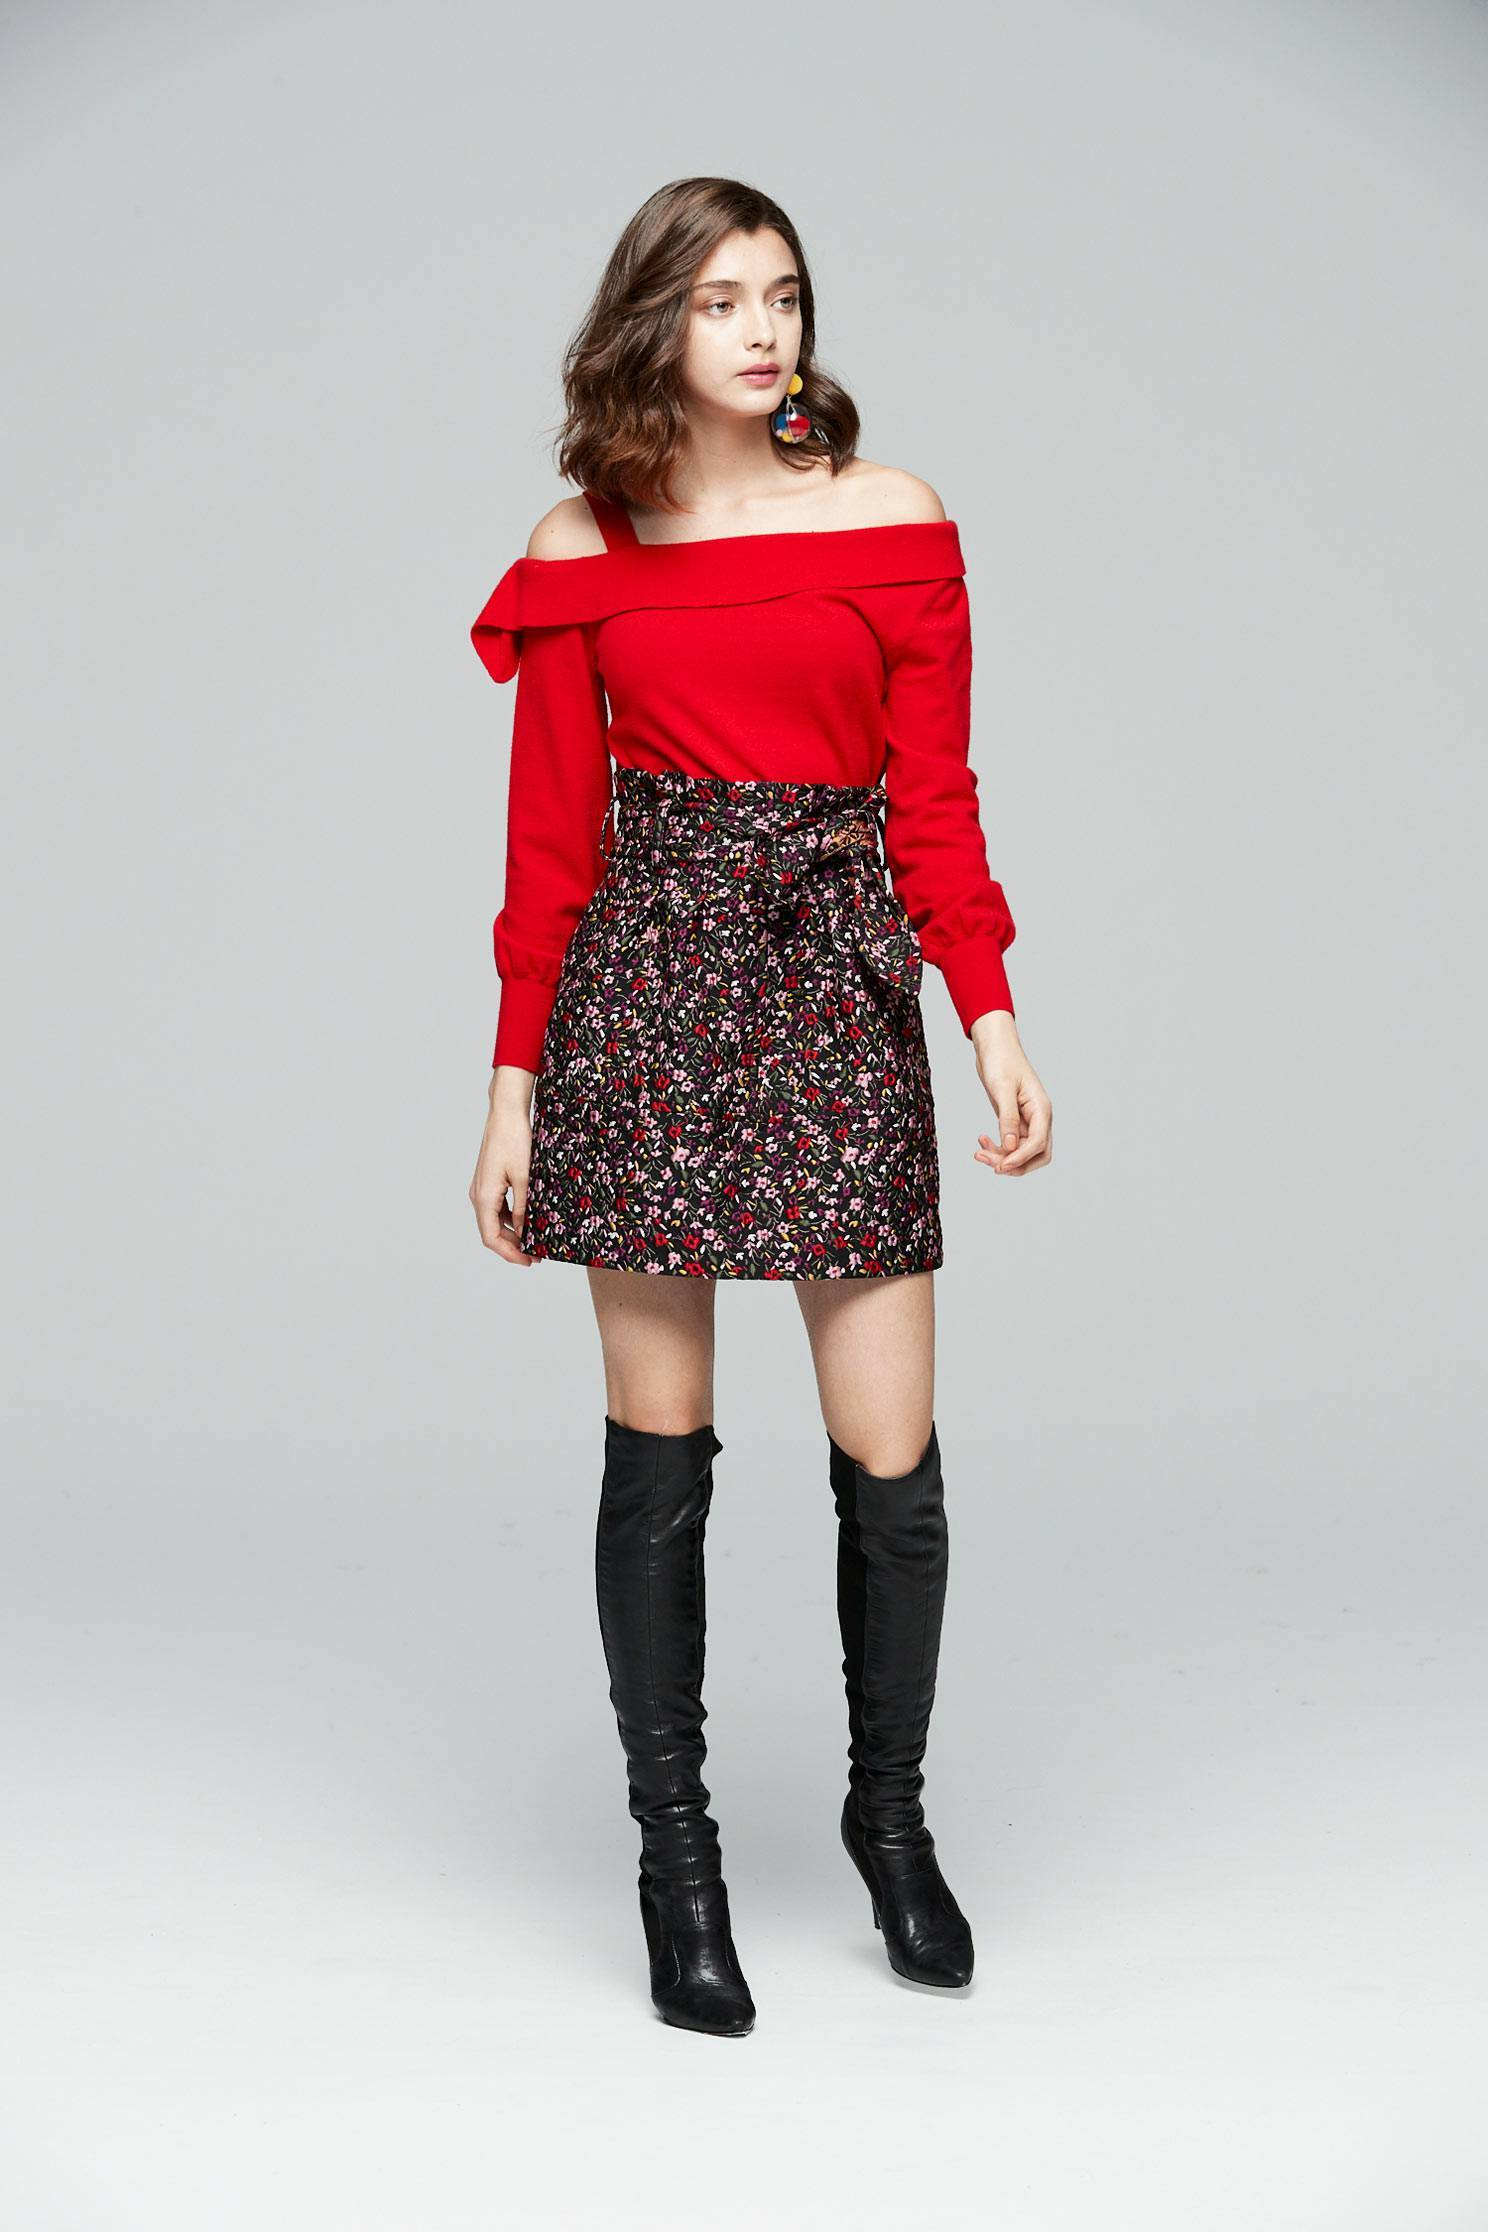 Off-the-shoulder knitted tops